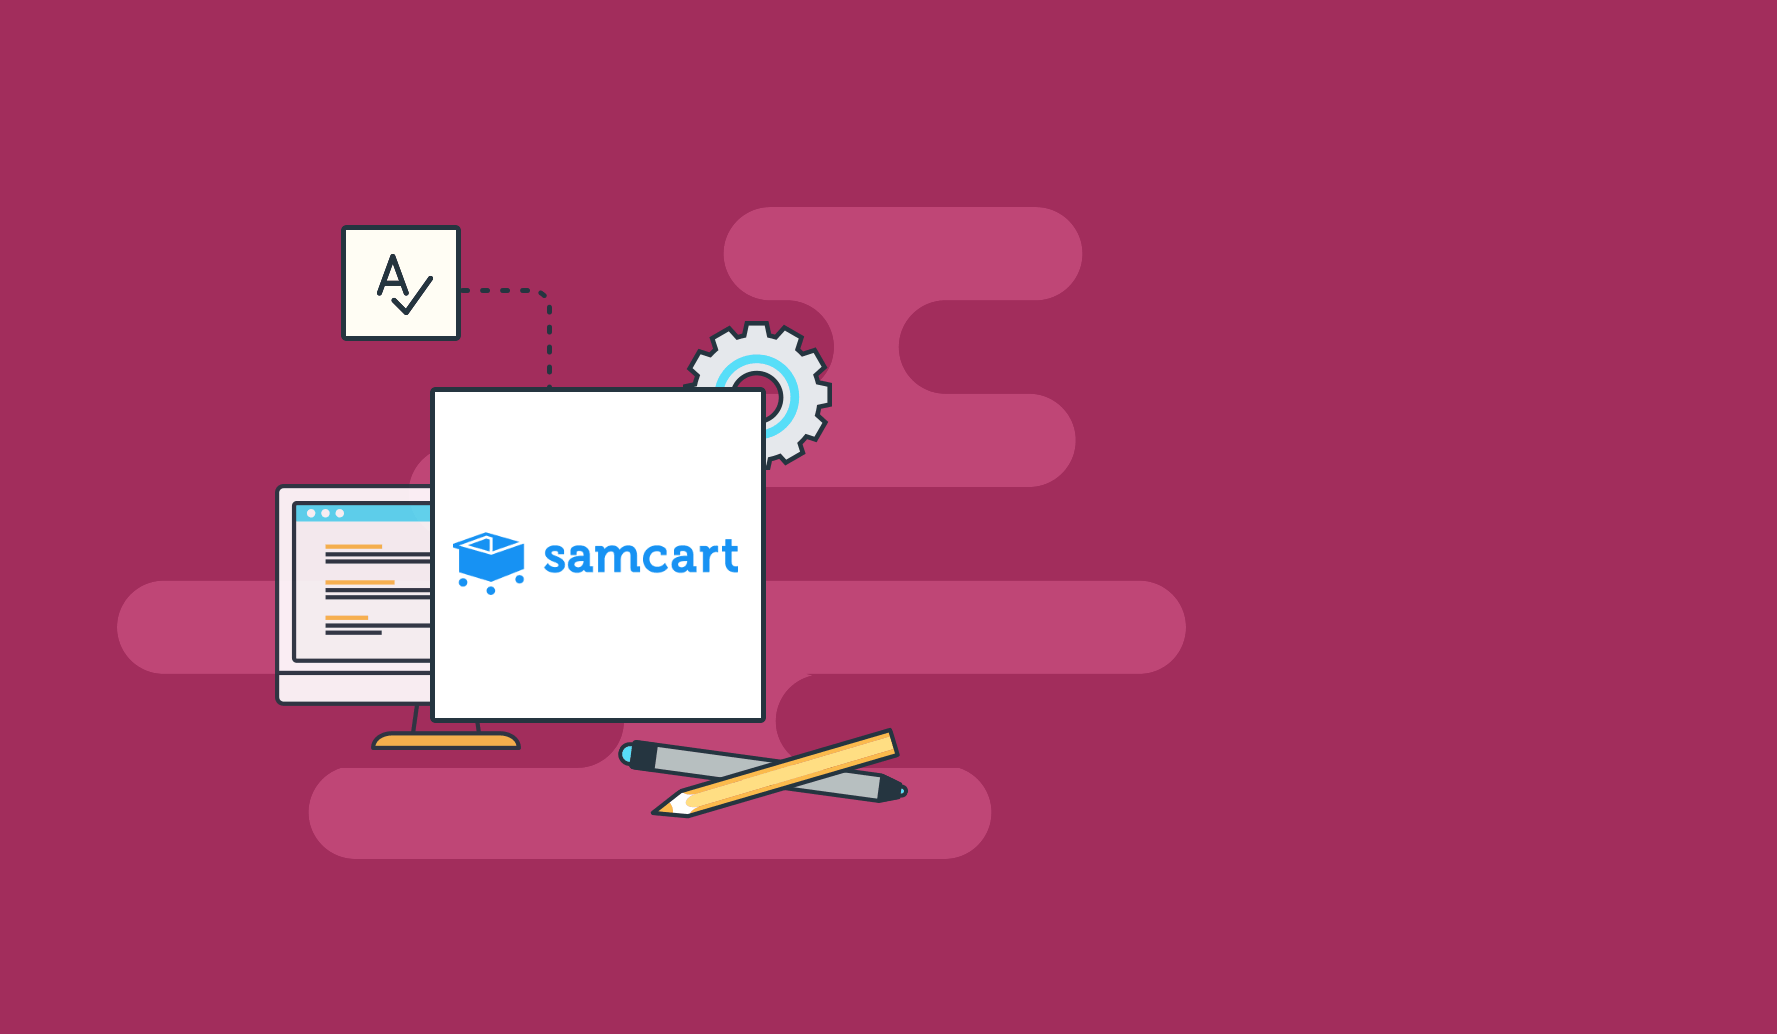 How To Contact Samcart Support